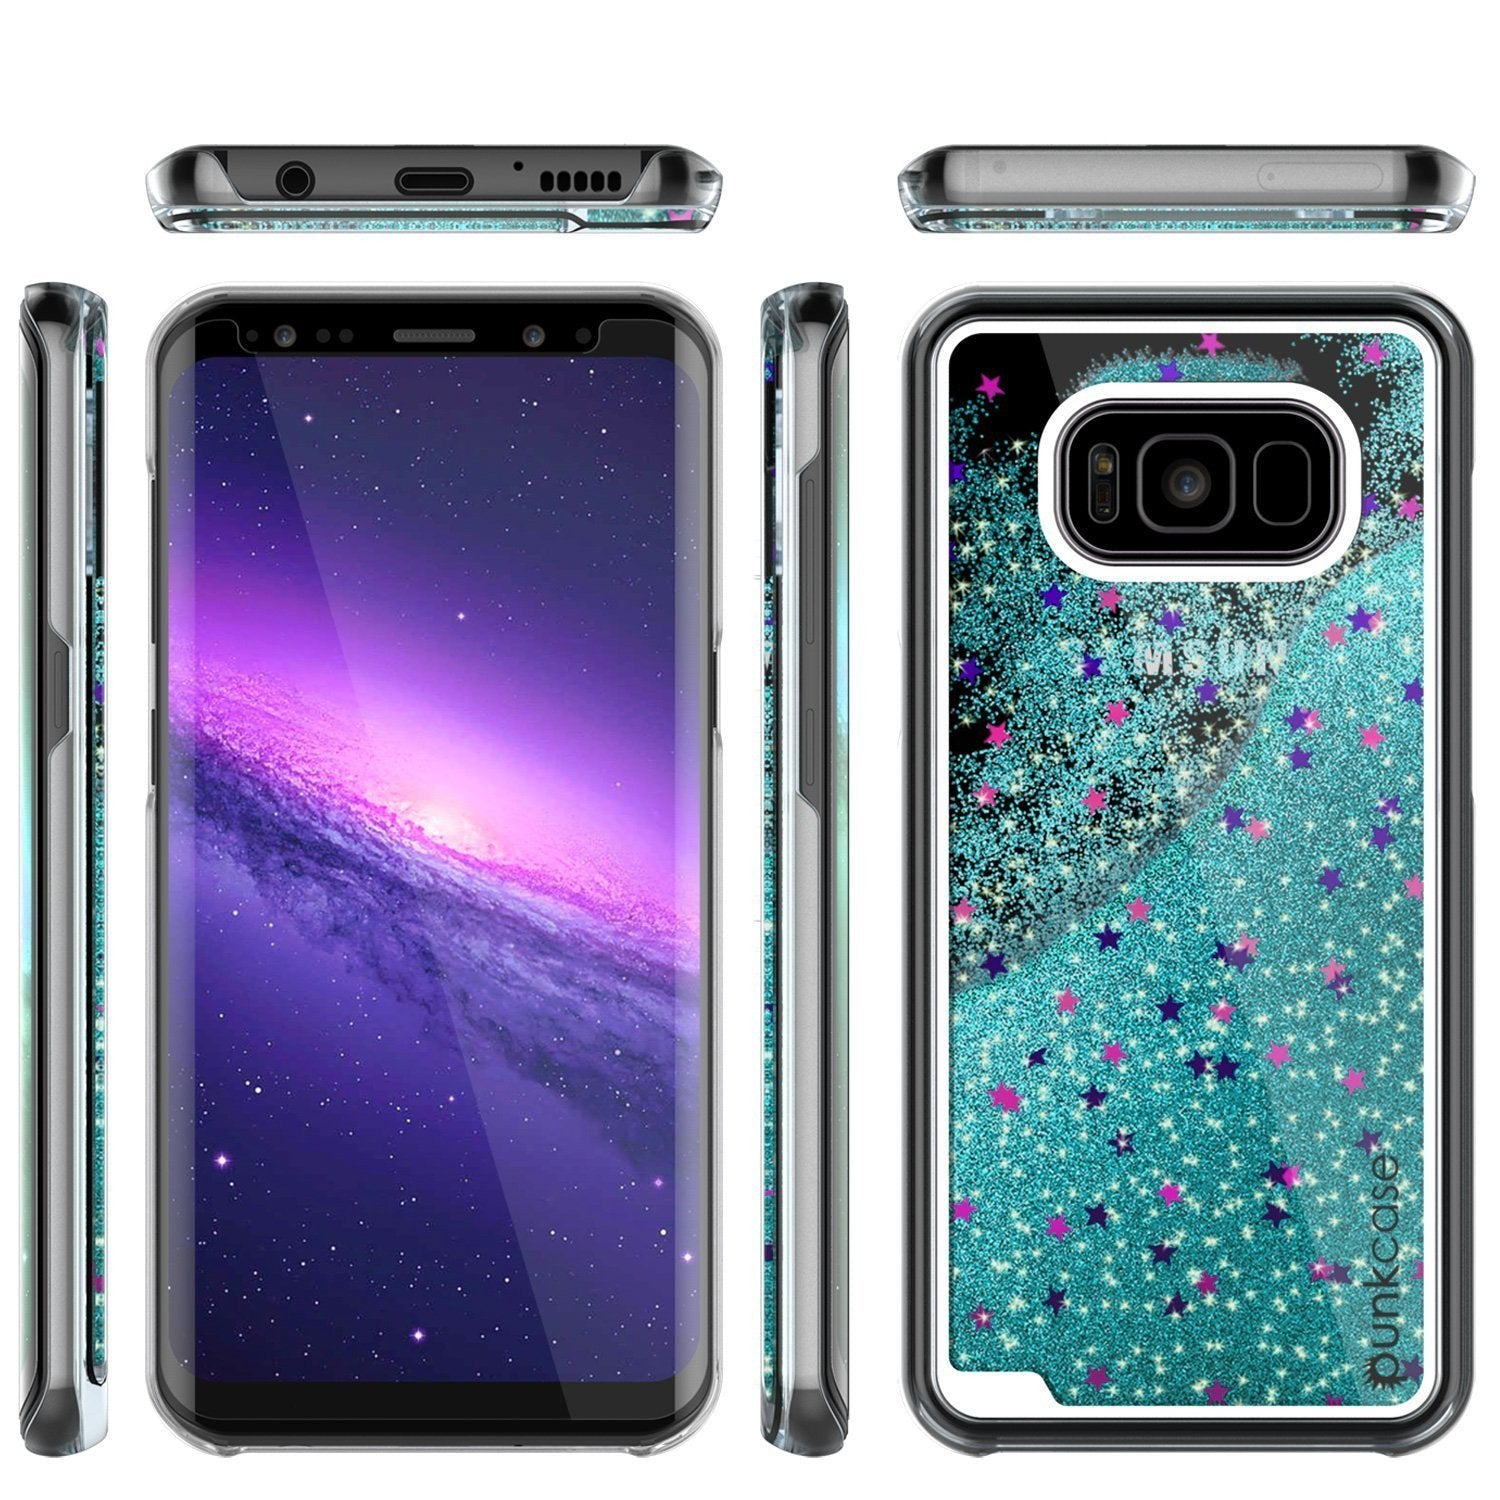 Galaxy S8 Case, Punkcase® Lucid Teal Series | Card Slot | Shield Screen Protector | Ultra Fit